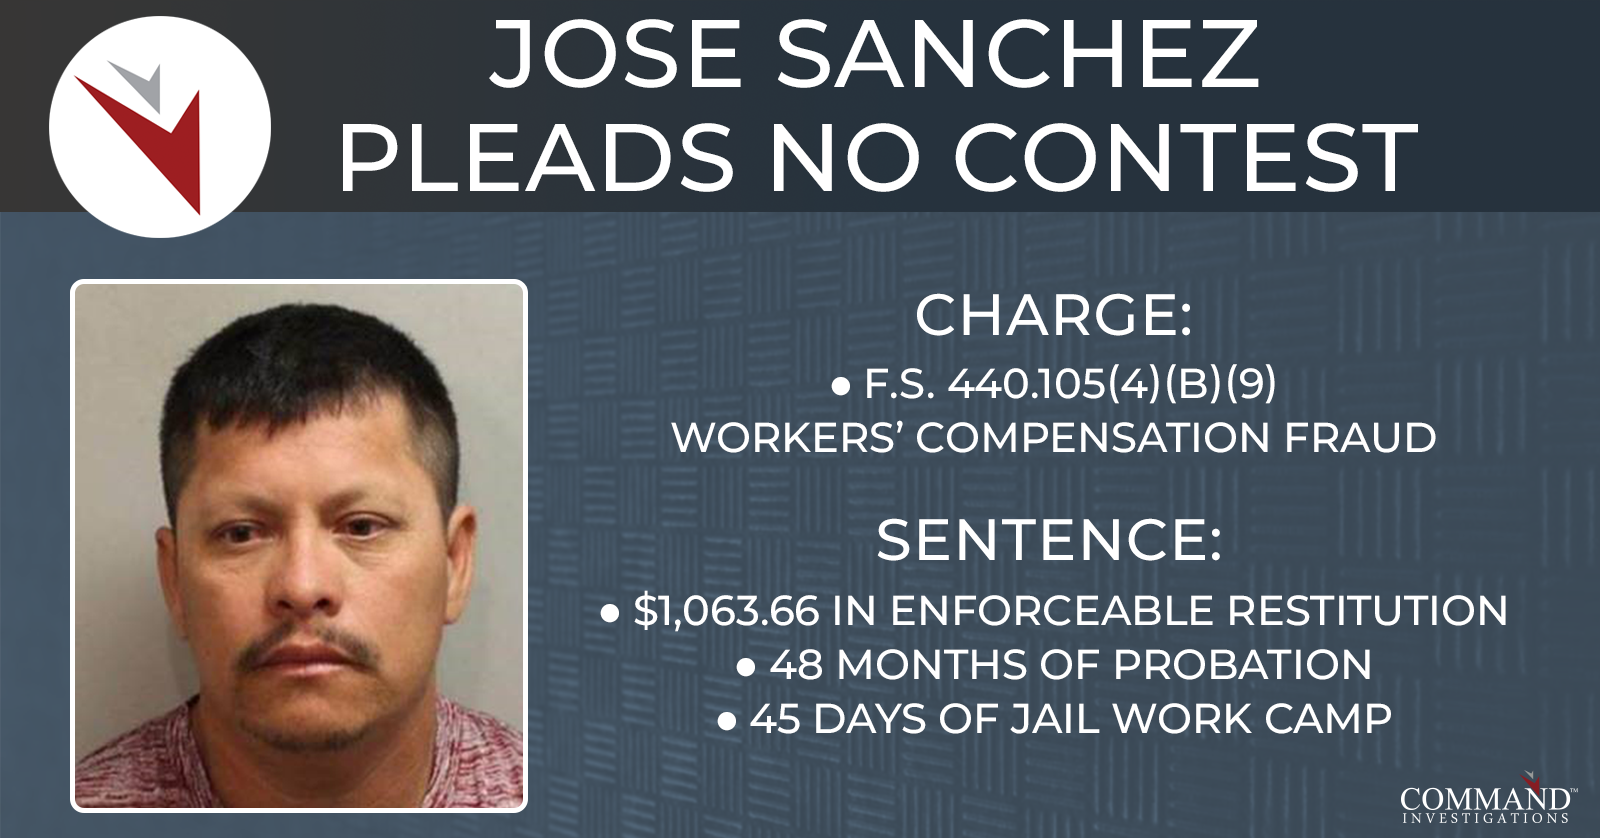 Jose Sanchez pleads no contest to workers' compensation fraud